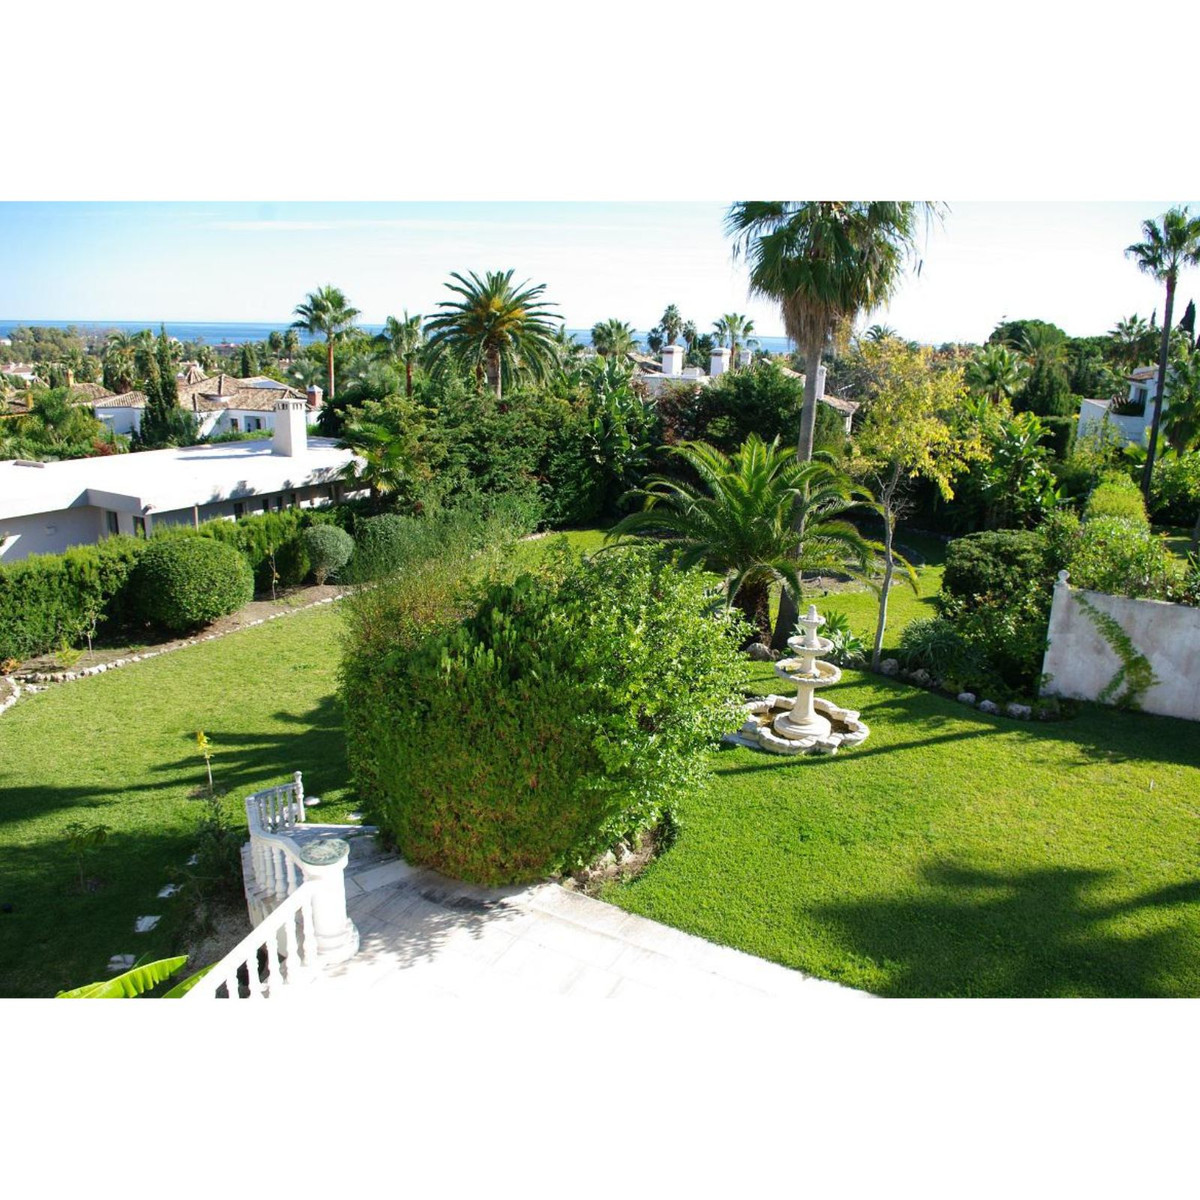 Spacious villa close to everything, you can walk to the beach and Puerto Banus with all its leisure , Spain